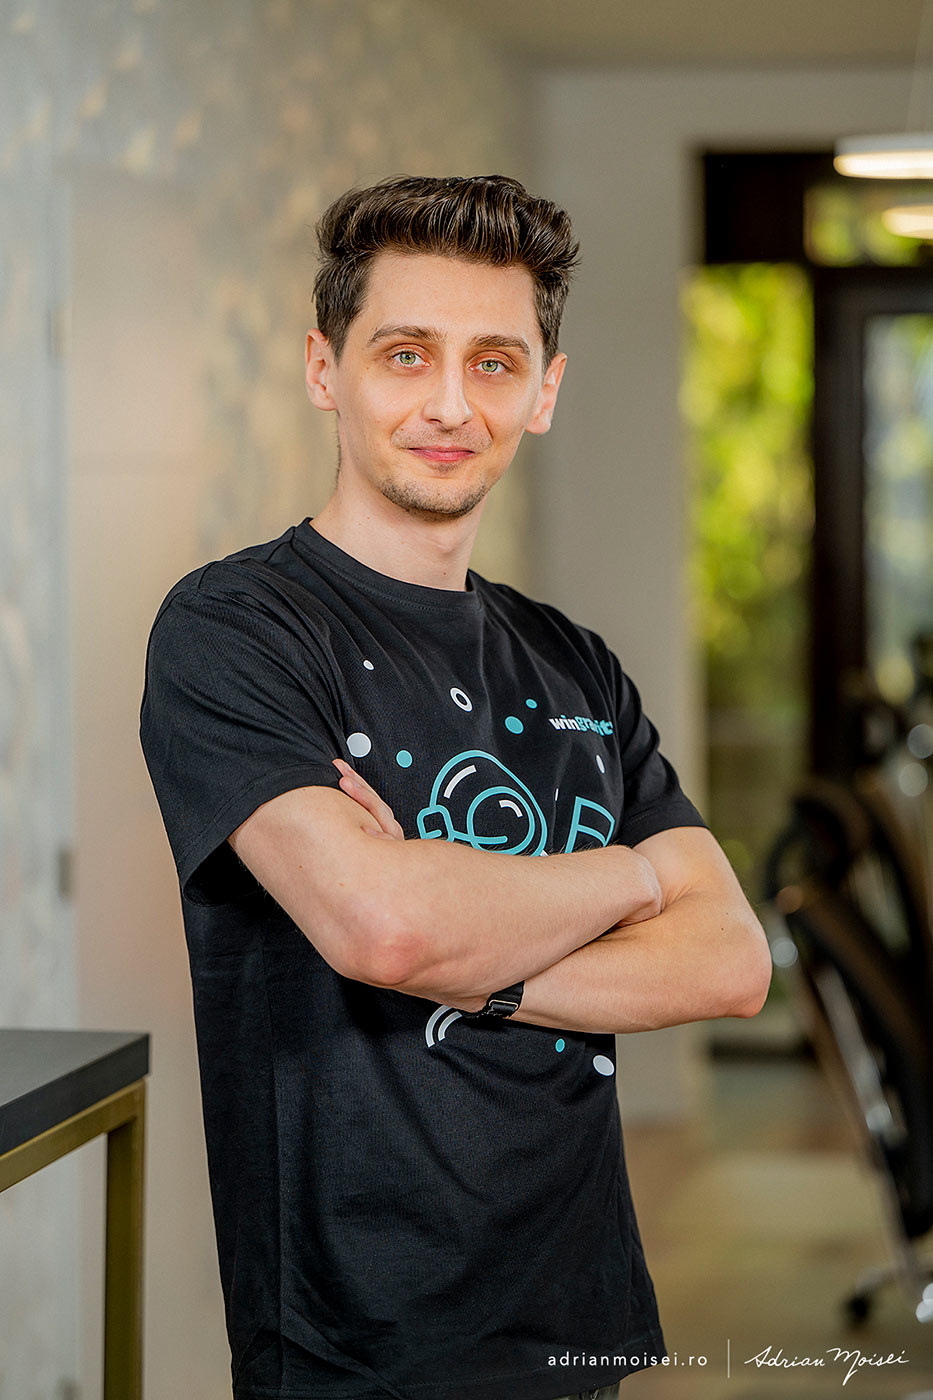 Daniel at Slashcore - matches top software developers with worlds most innovative companies